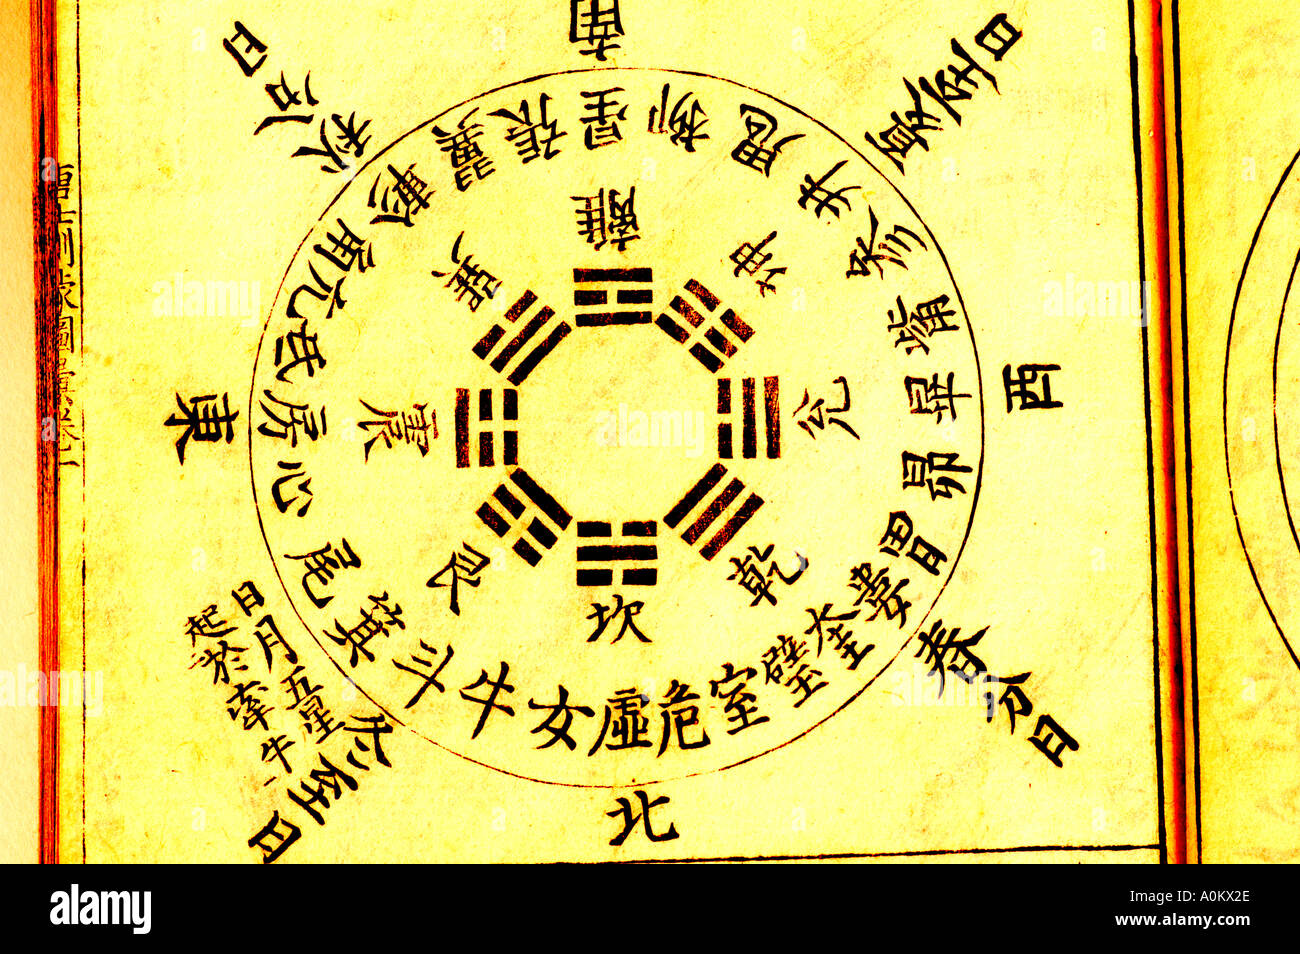 Ancient asian chart earth wind fire water dsca 0645 - Stock Image